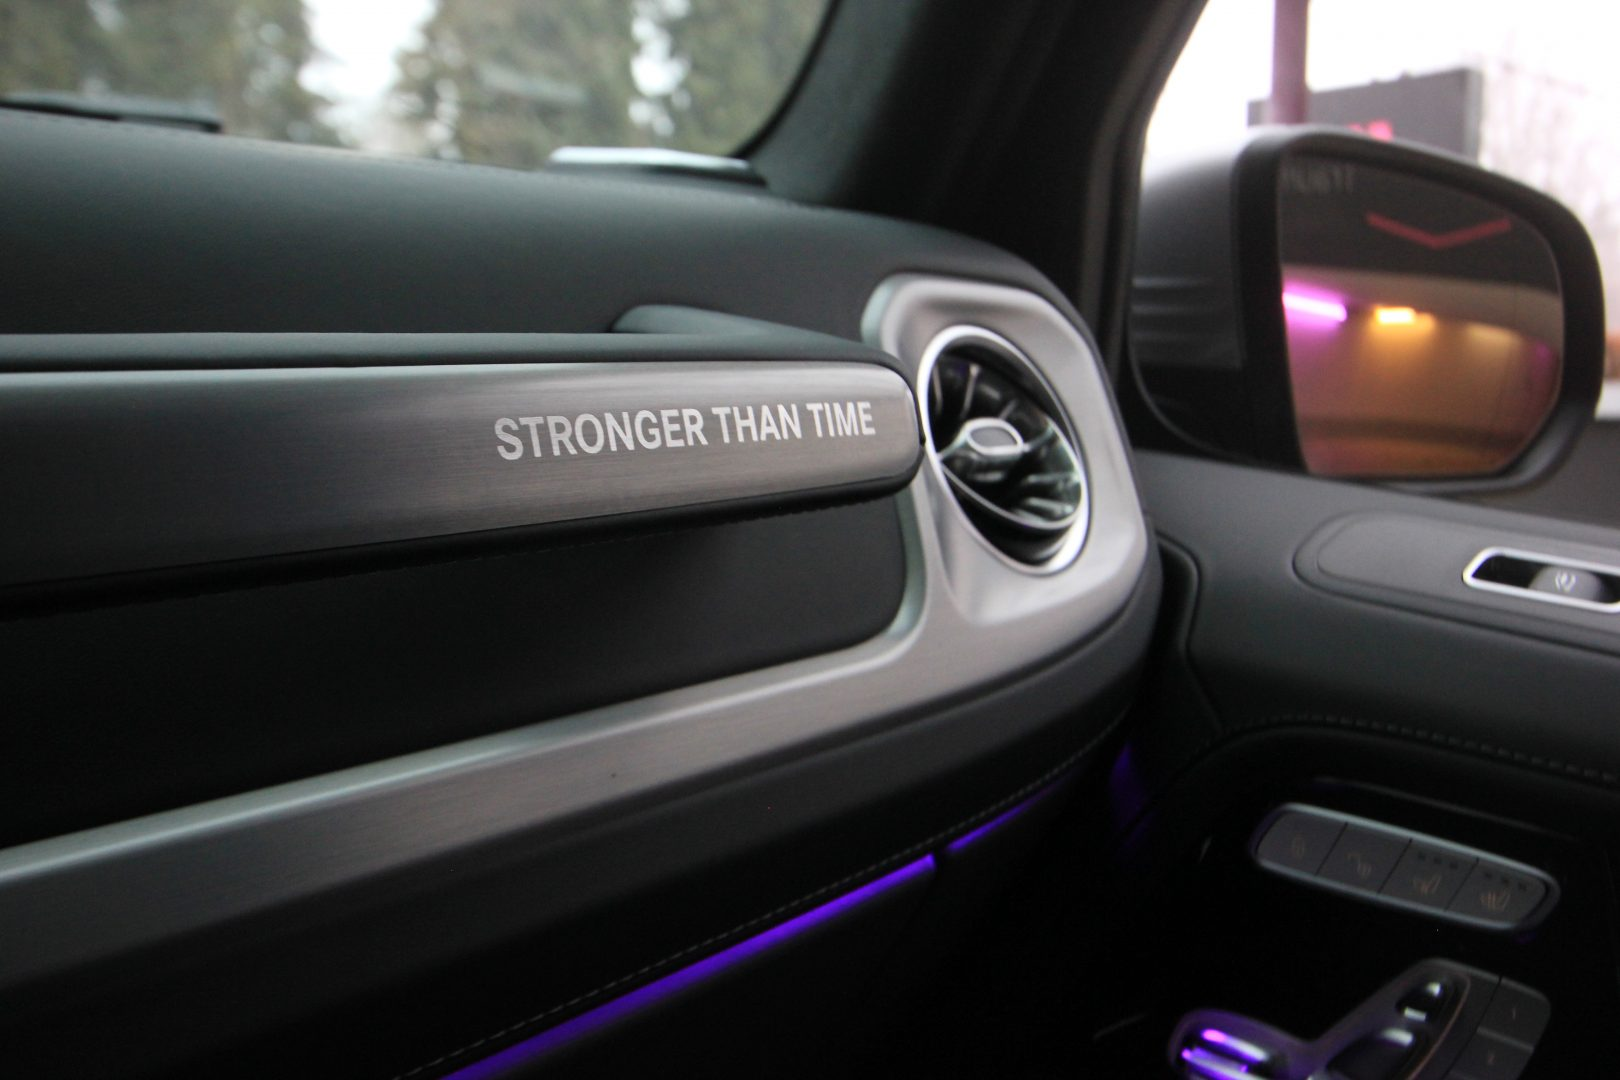 AIL Mercedes-Benz G 63 AMG Stronger than time Edition 12